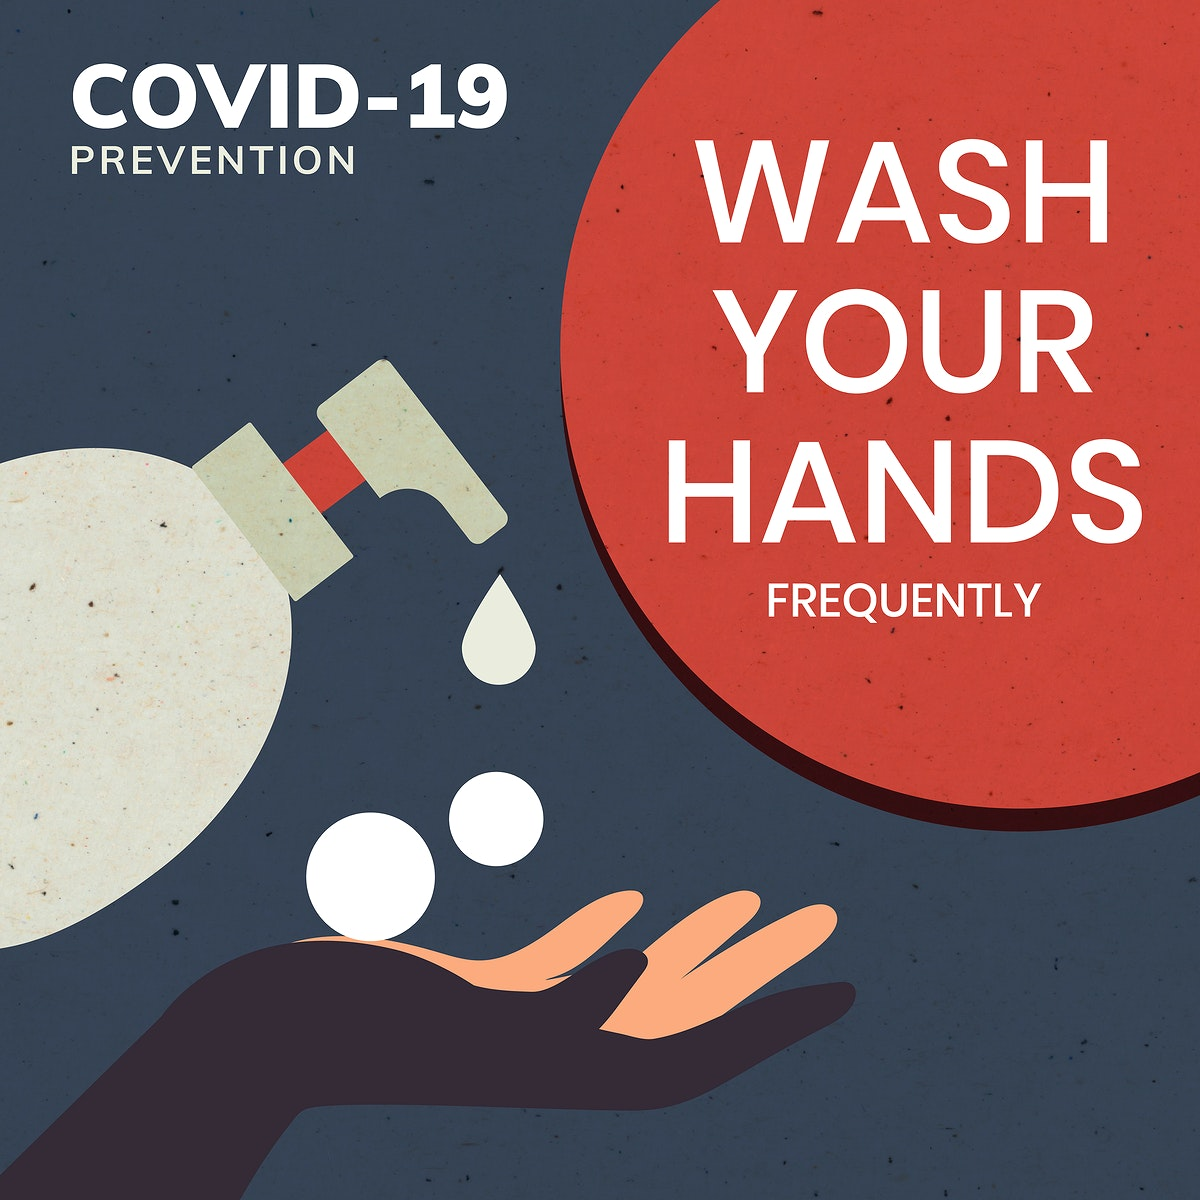 Wash your hands covid-19 prevention message template vector